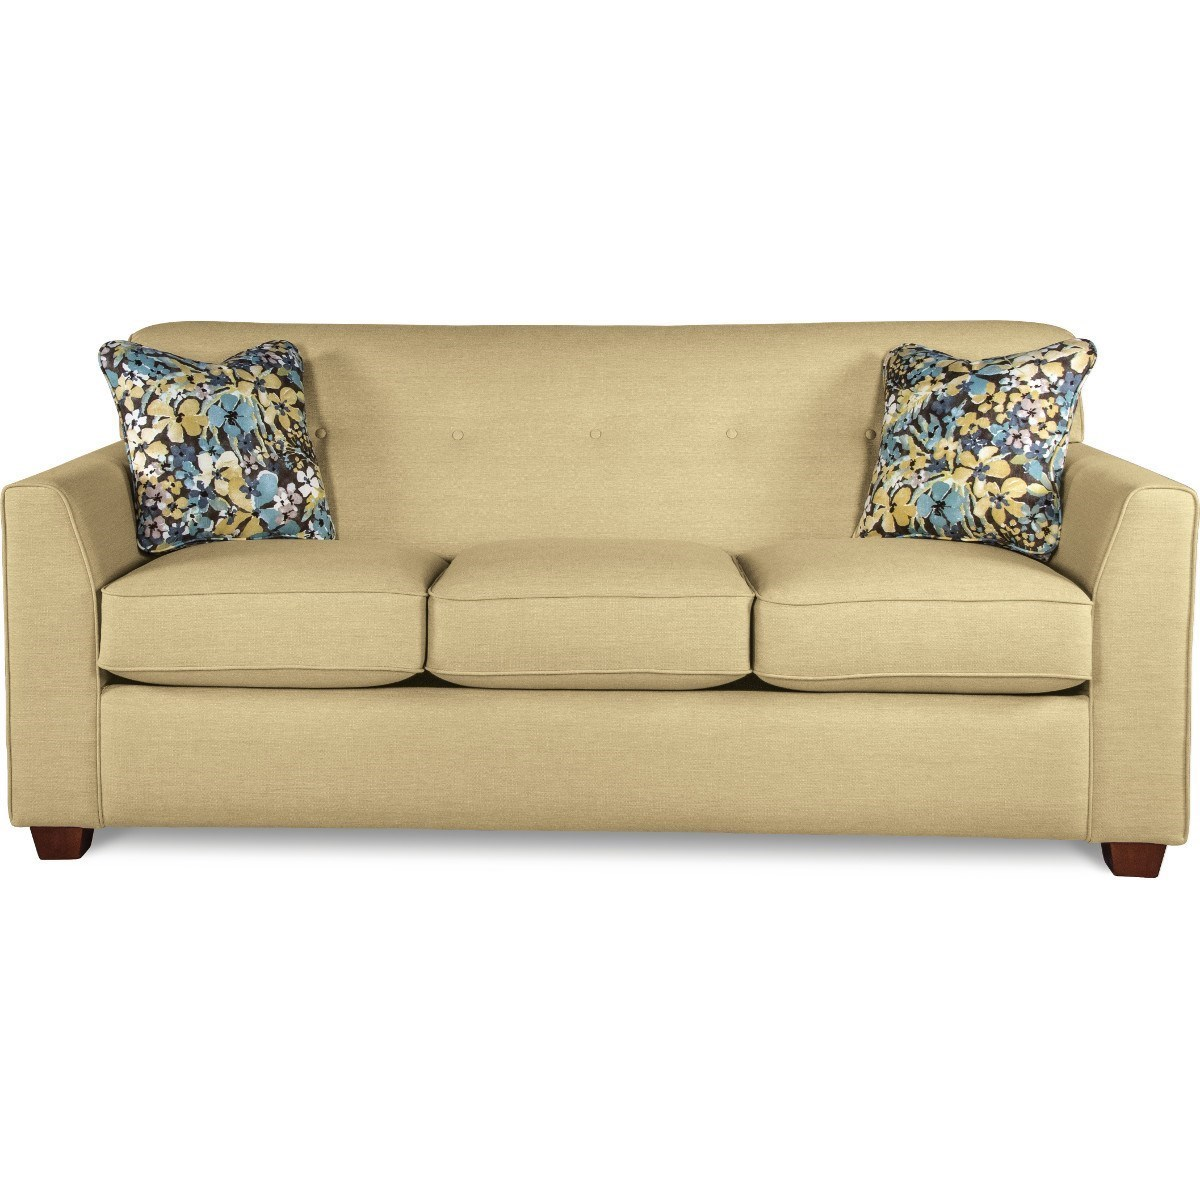 Premier Supreme Comfort Queen Sleep Sofa